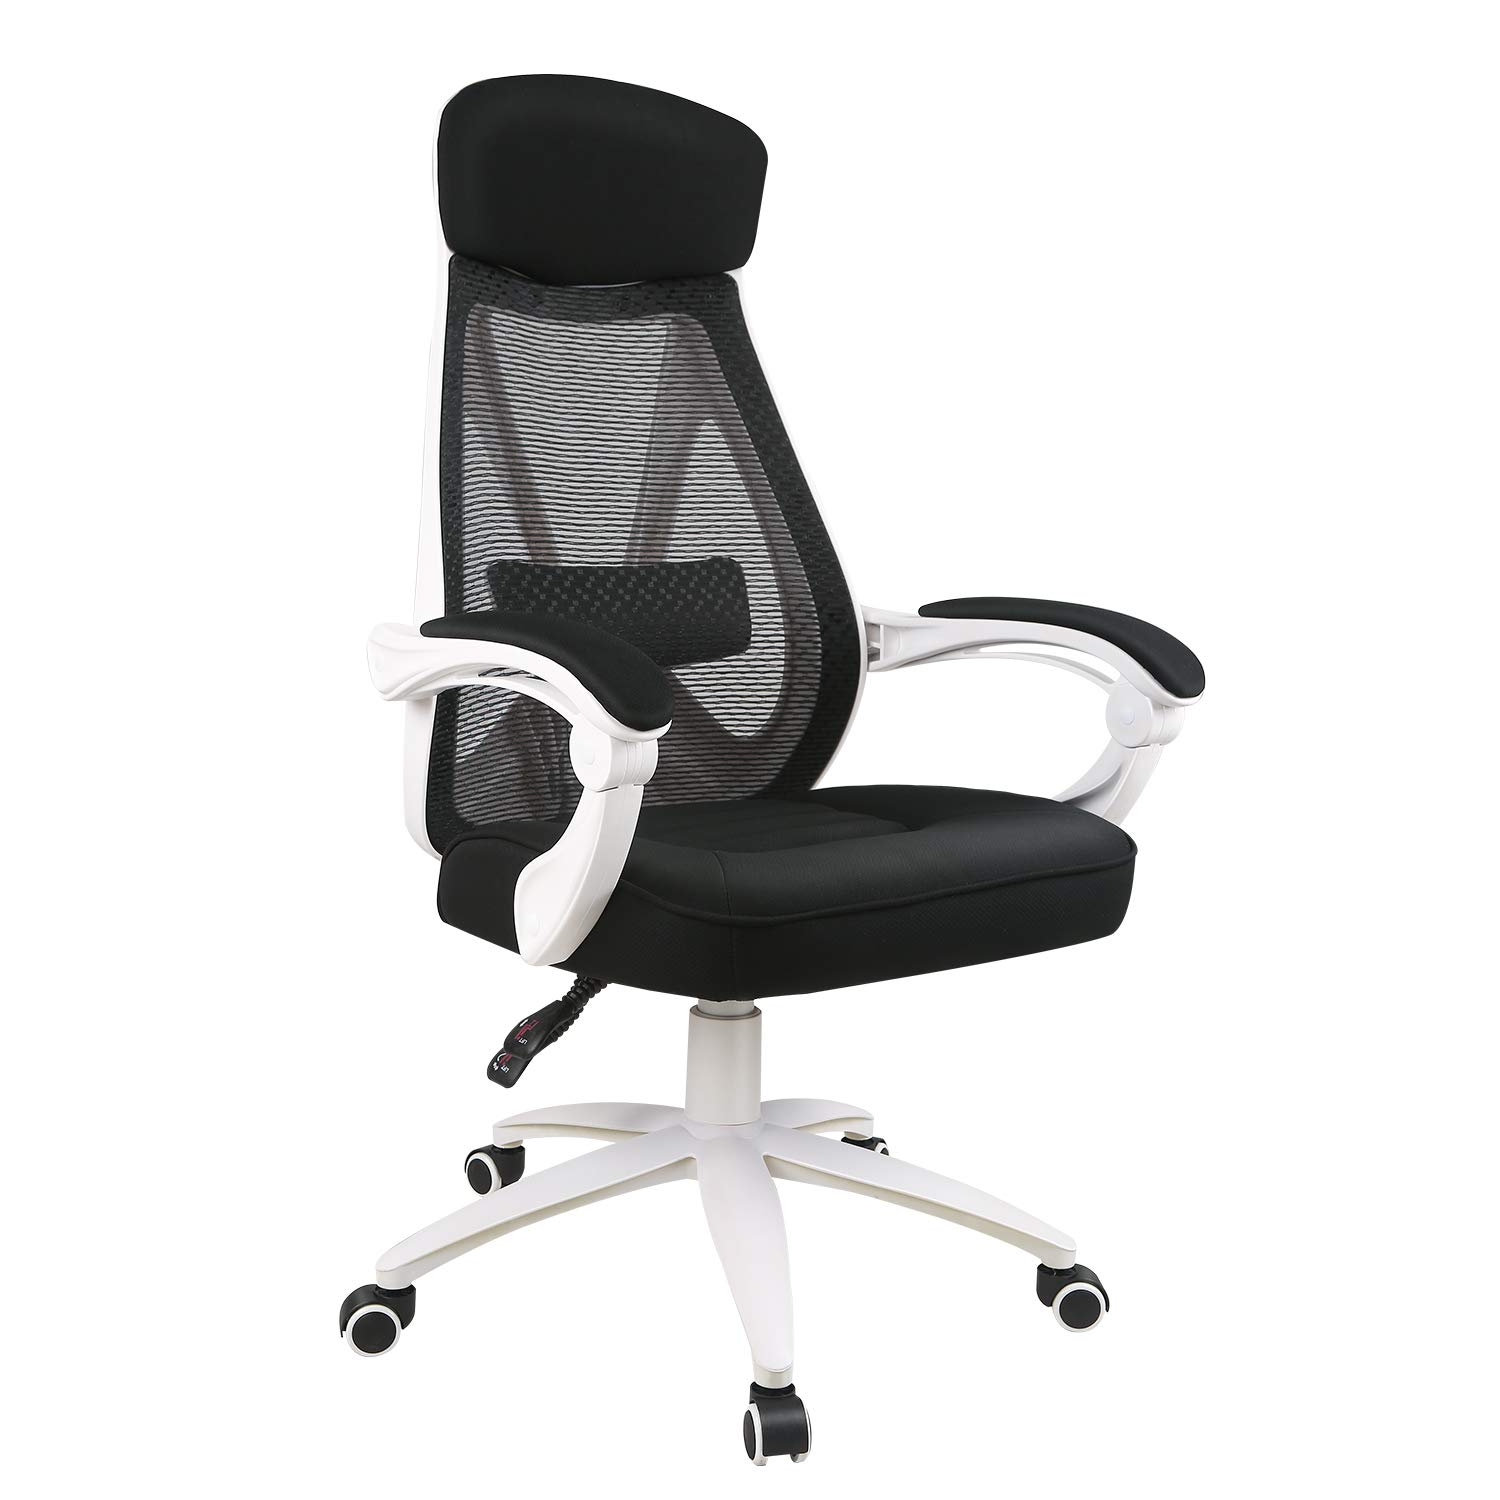 DEVAISE Ergonomics Recliner Office Chair, High Back Mesh Computer Desk Chair with Adjustable Lumbar and Armrest Support, White